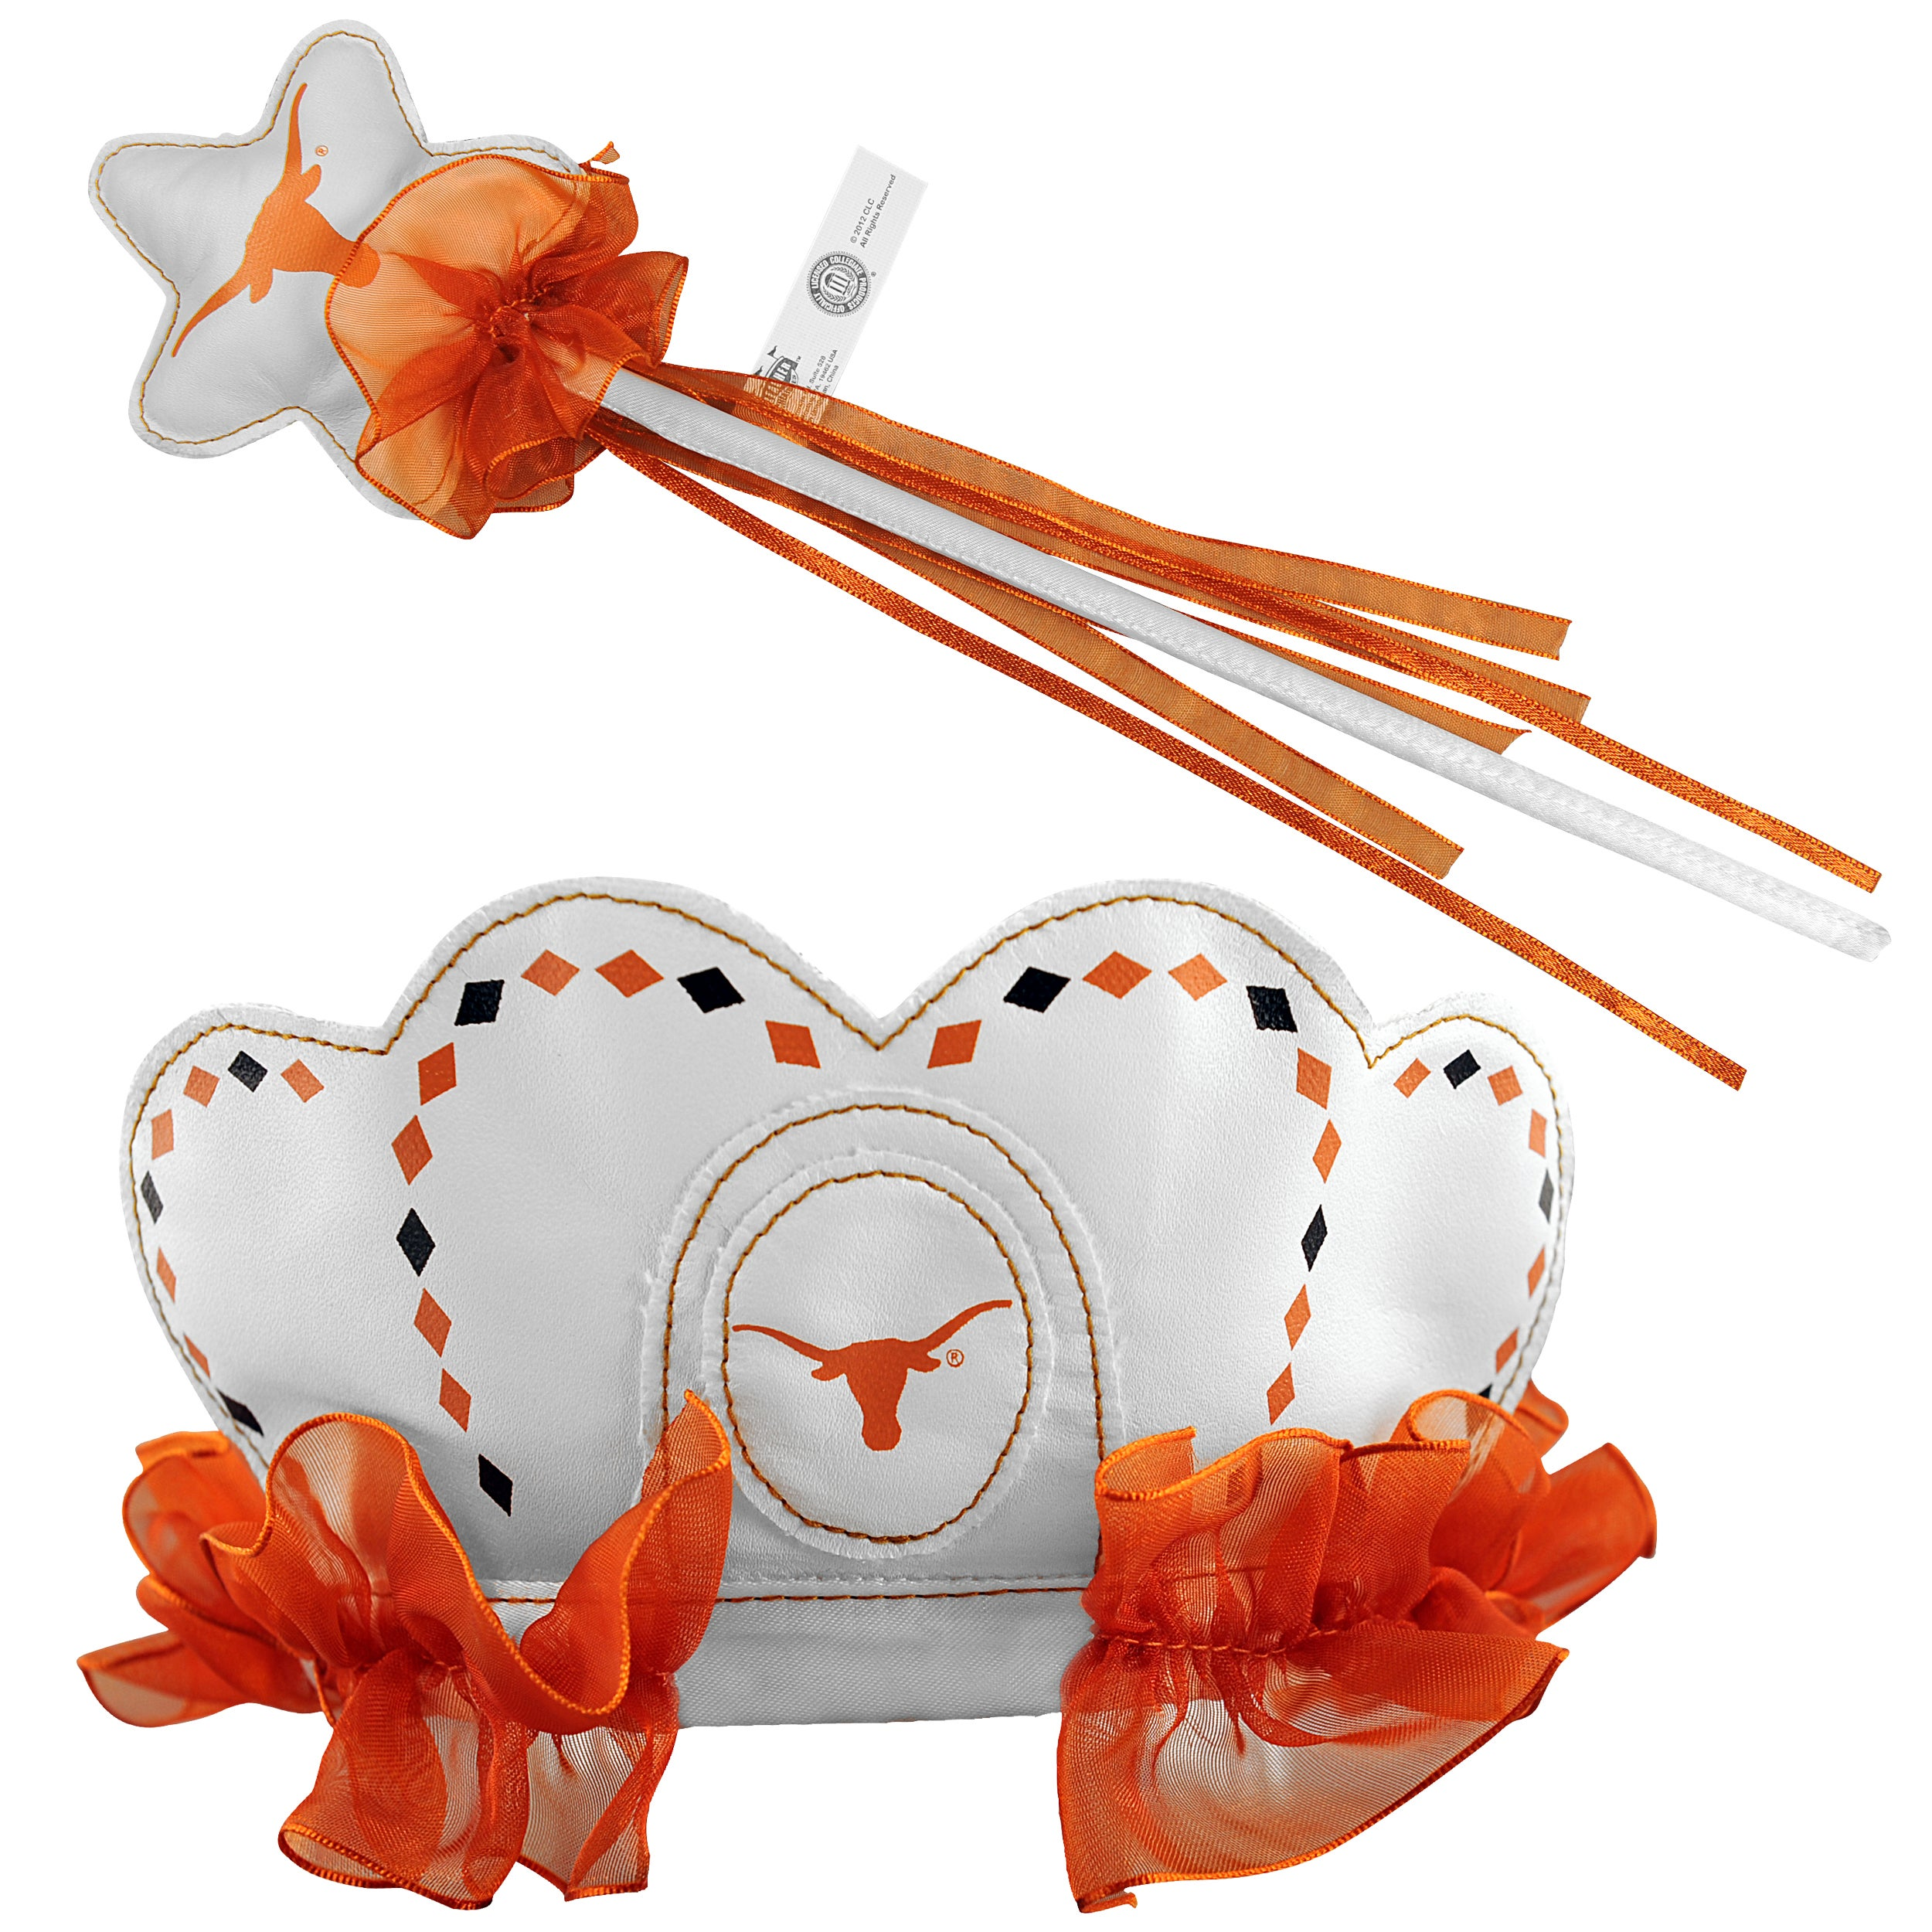 Bleacher Creatures Texas Longhorns Tiara Wand Set